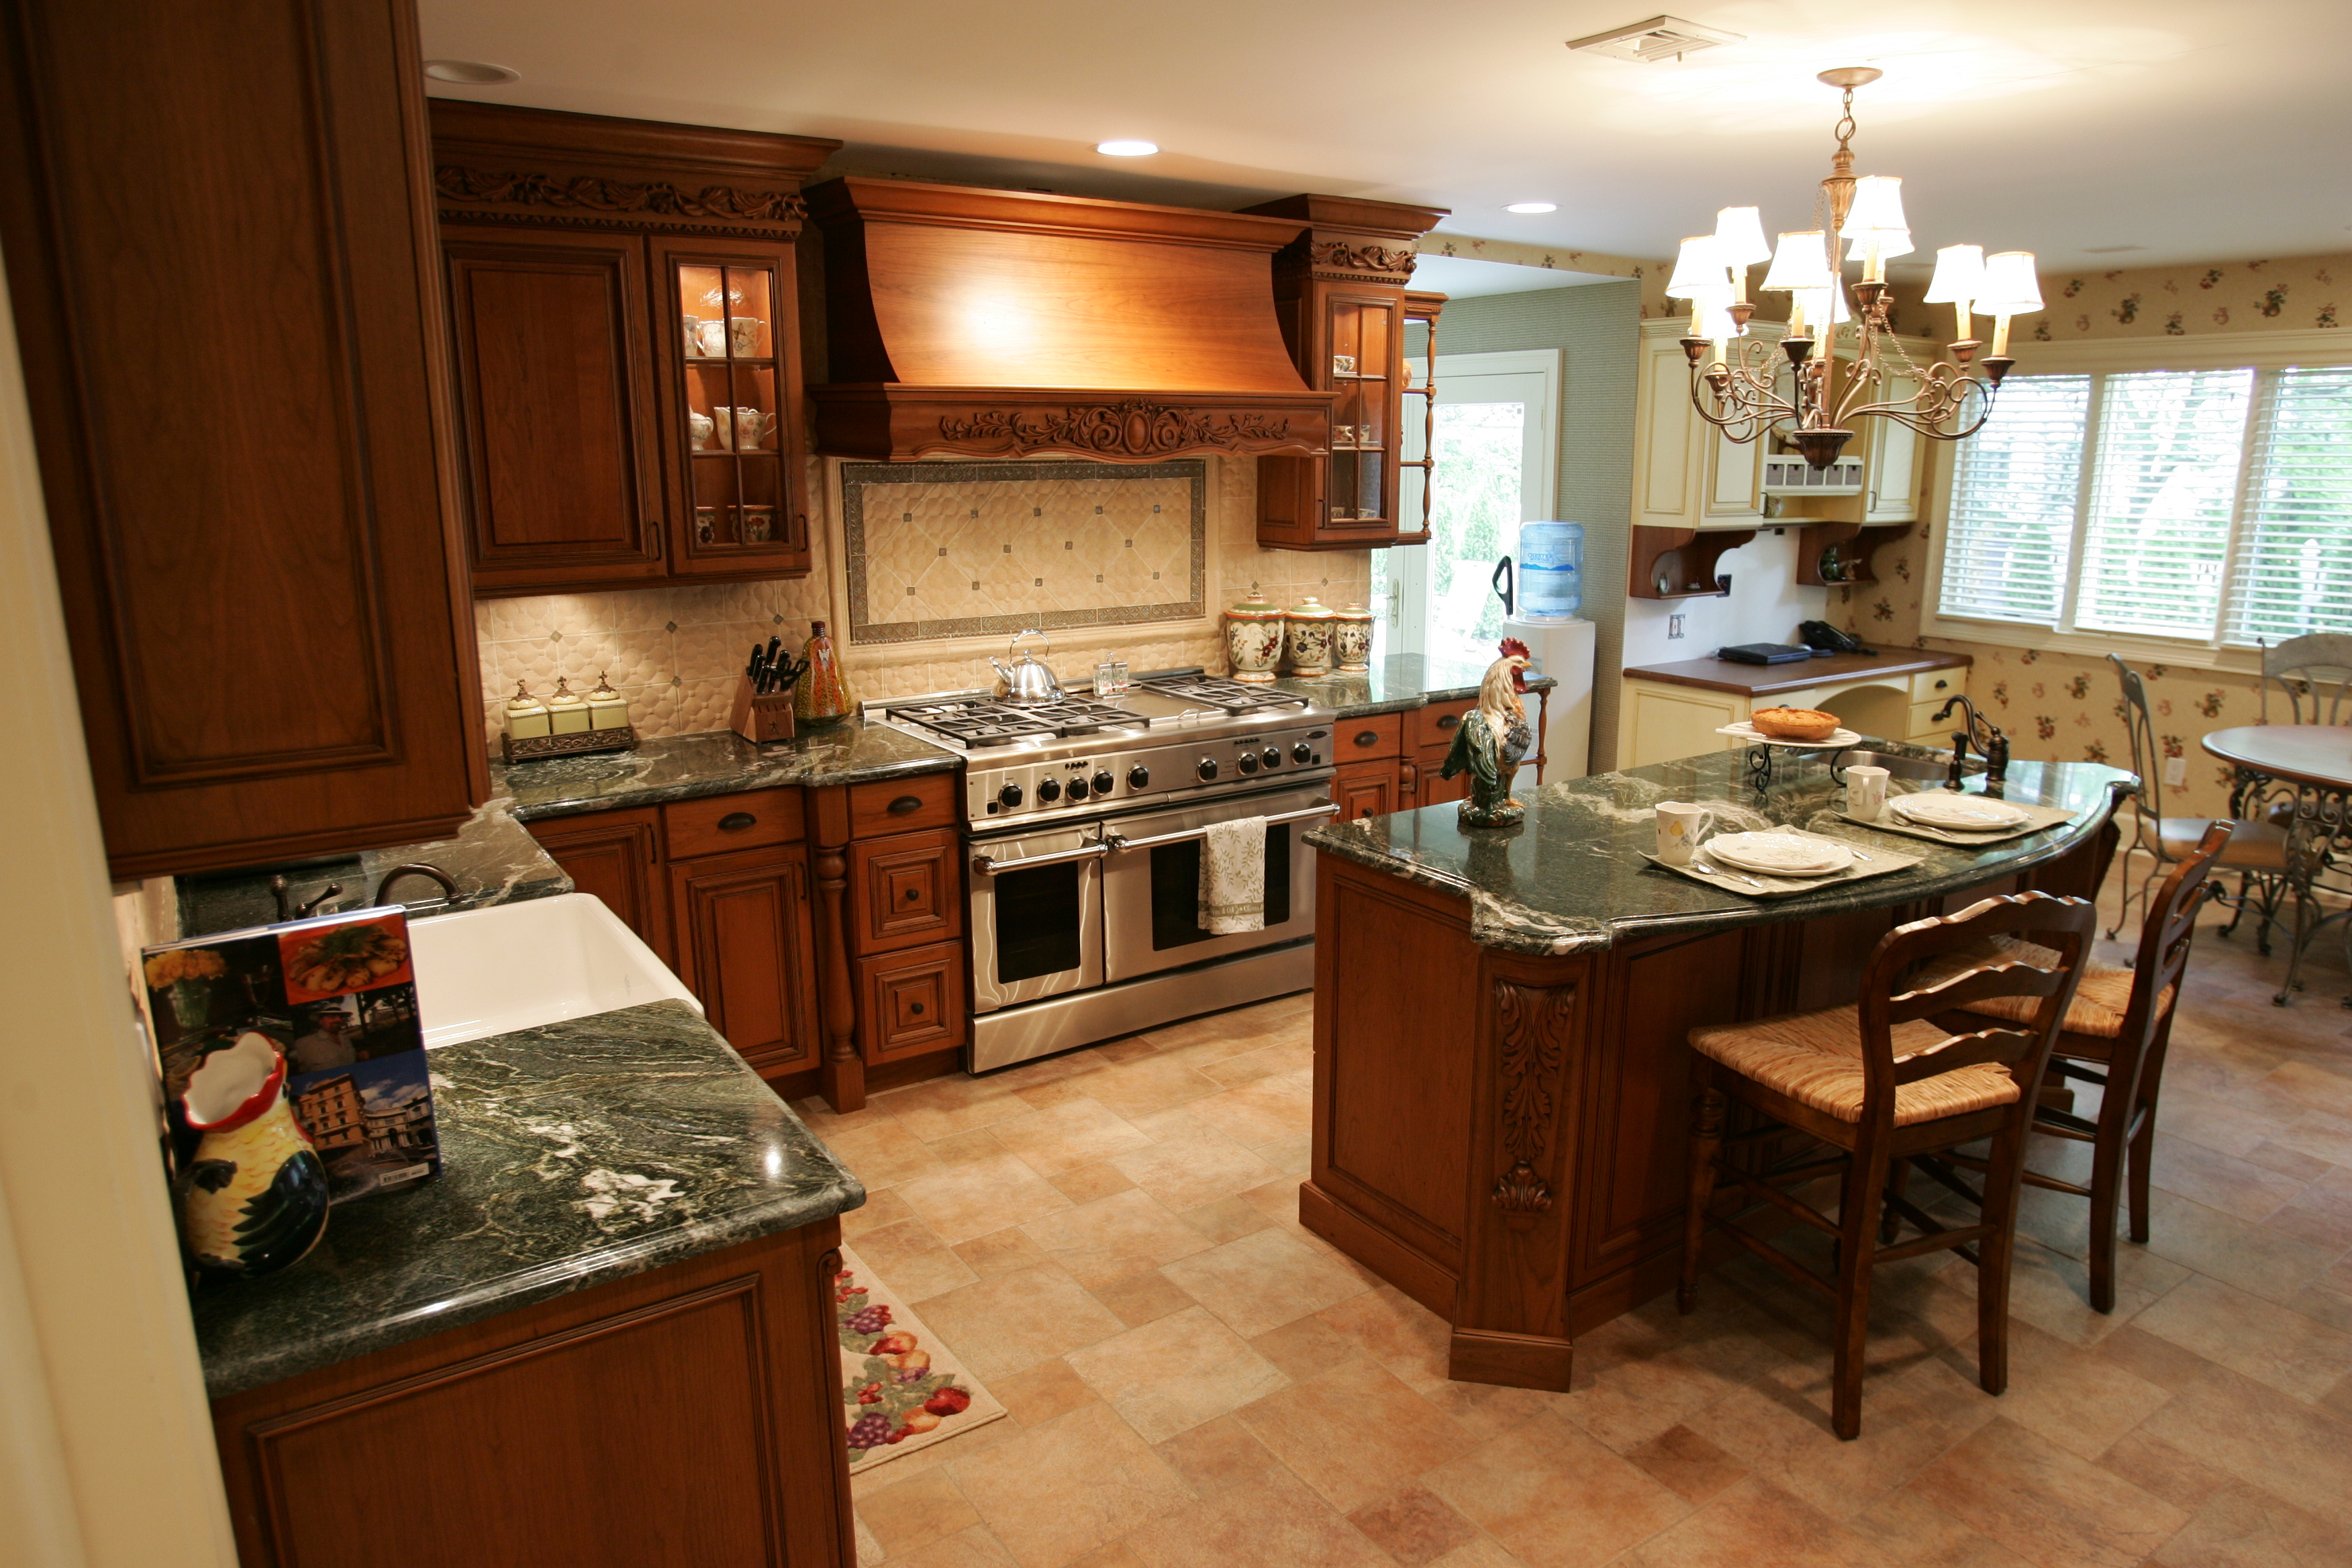 Thinking Of Remodeling Your Kitchen? Read This!